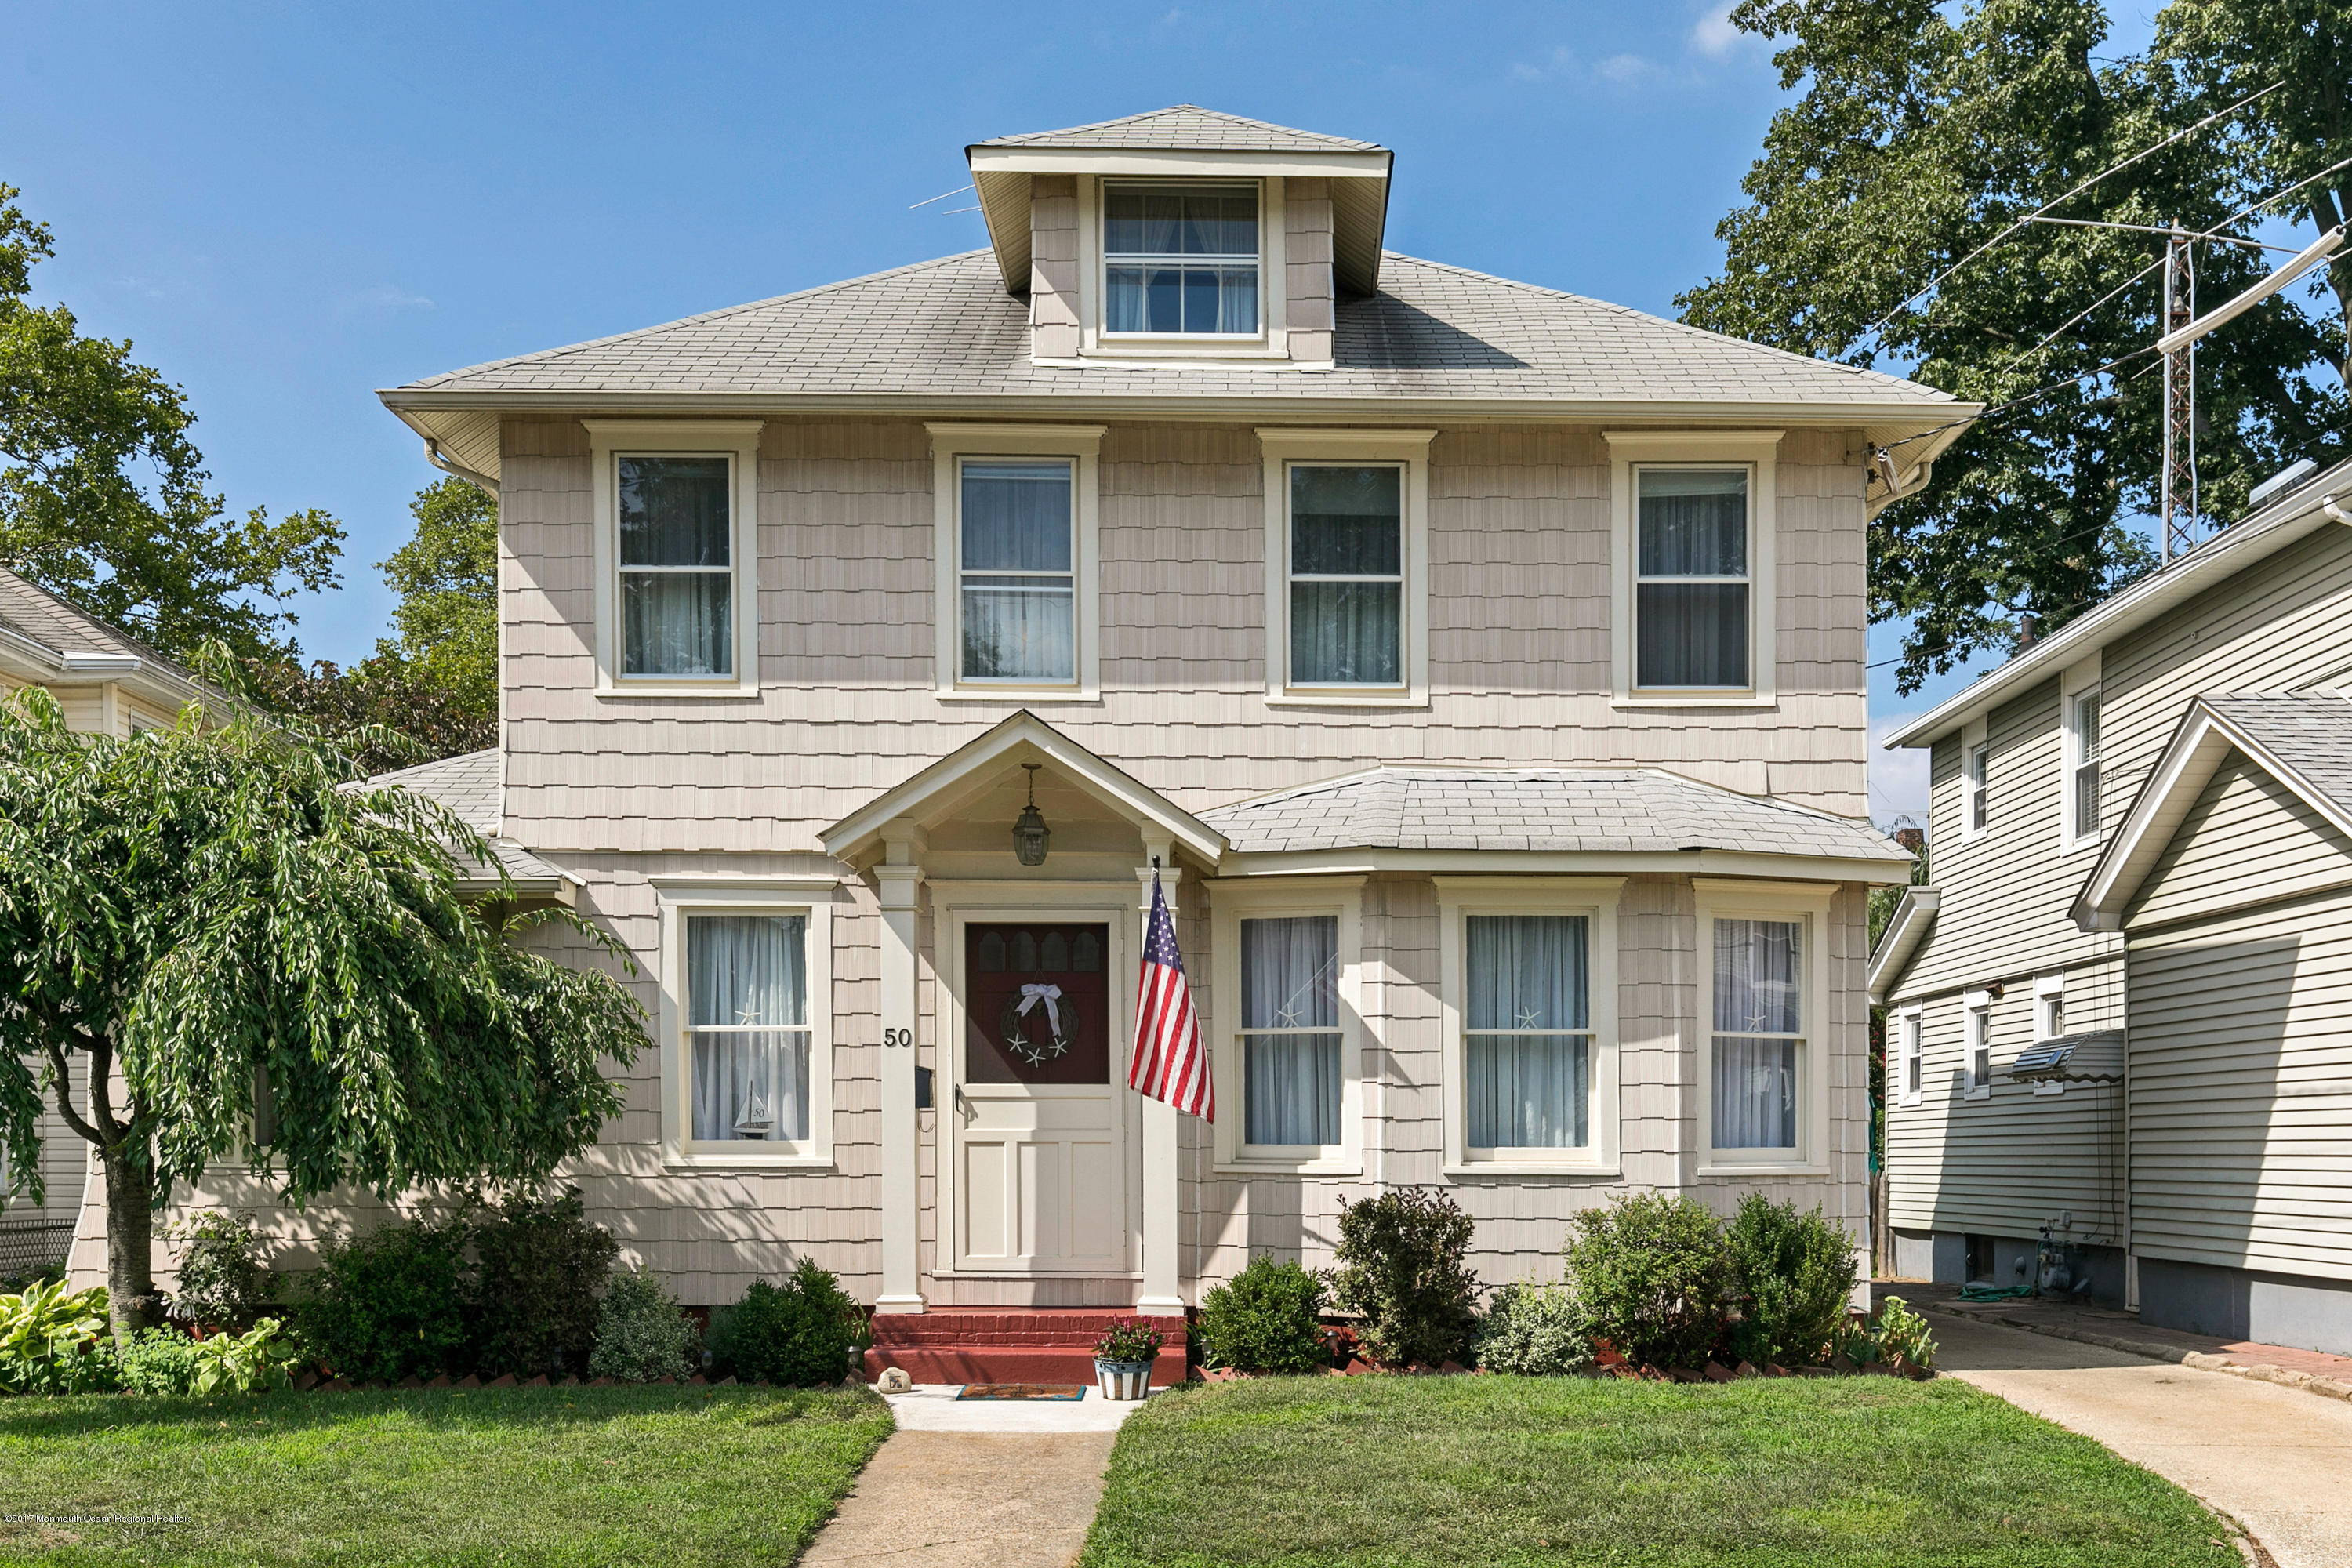 50 WAVERLY PLACE, RED BANK, NJ 07701